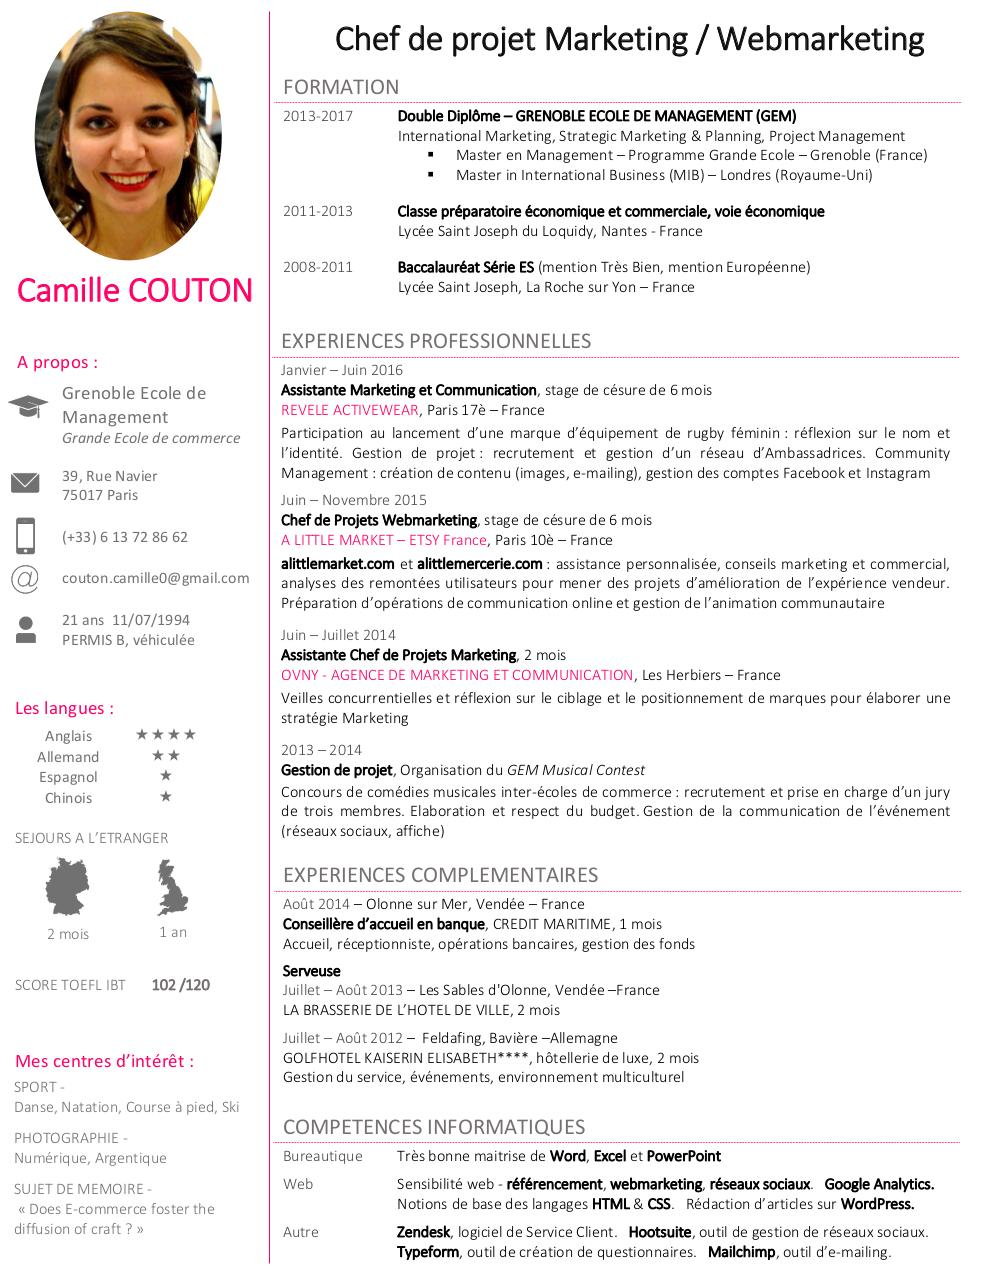 cv camille couton par couton camille